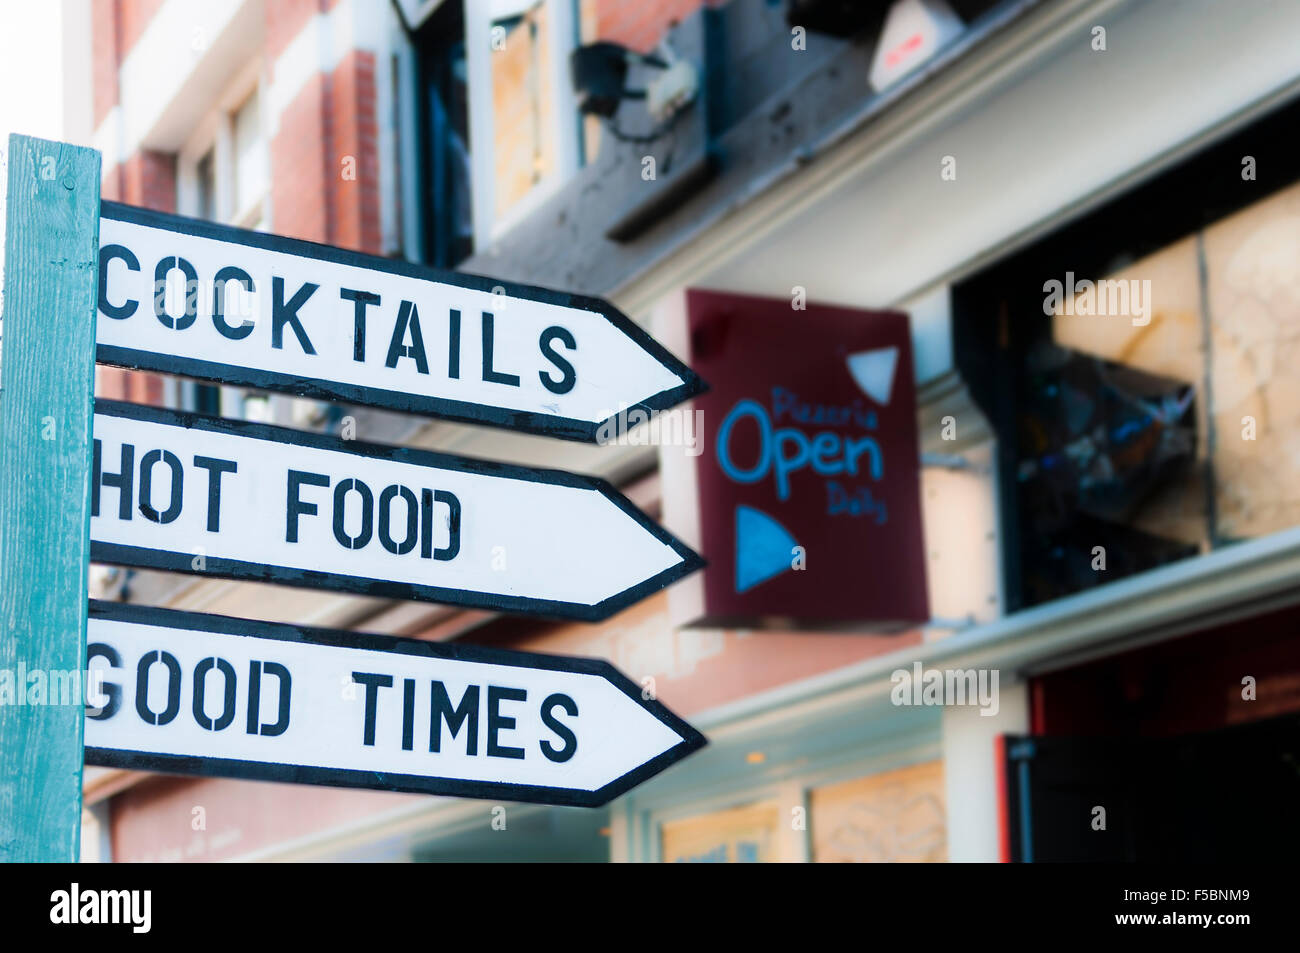 Sign to a pub saying 'Cocktails. Hot Food.  Good Times', Belfast - Stock Image